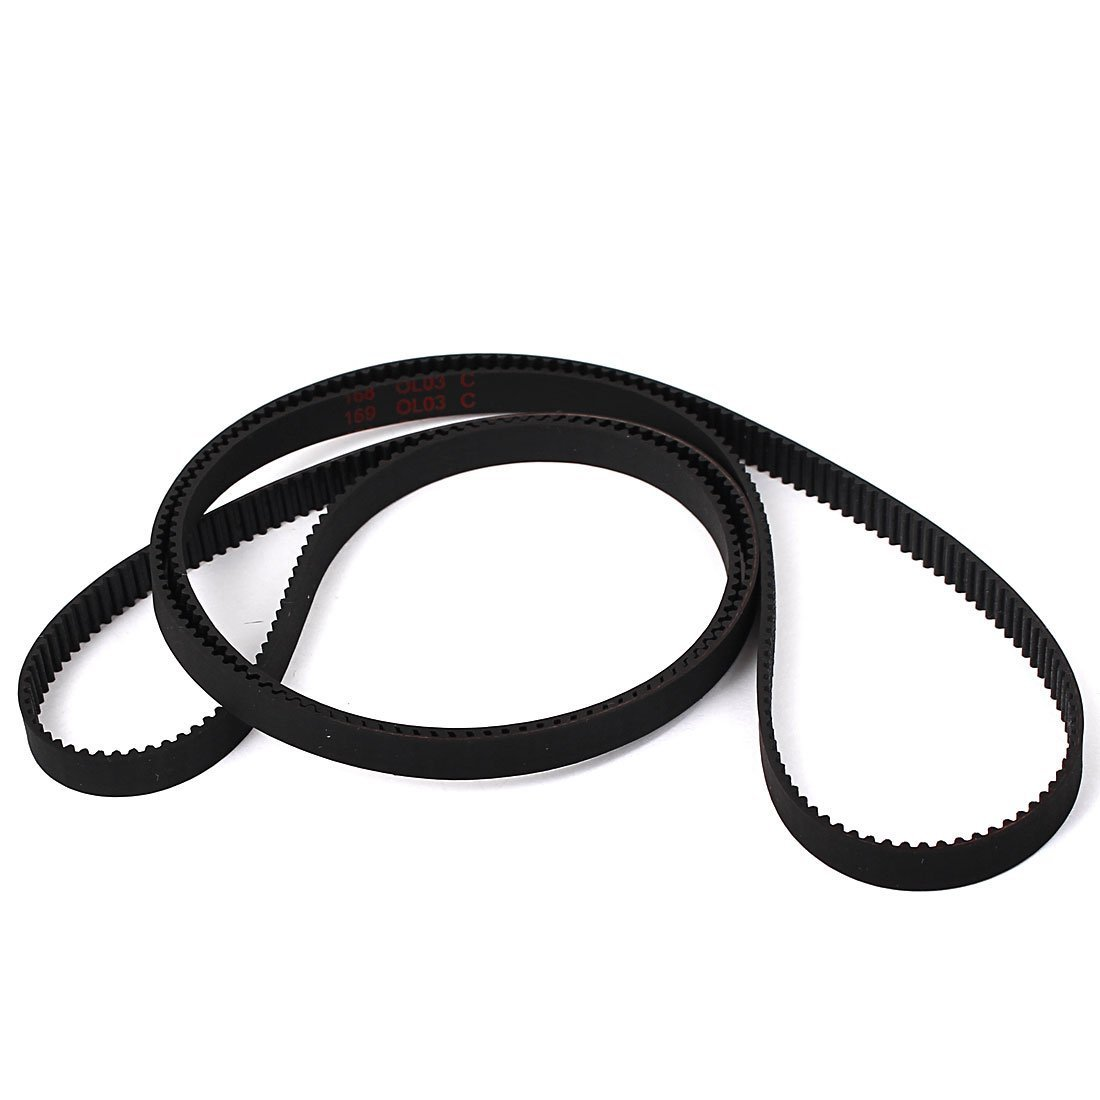 Uxcell a16031400ux0530 3D PRINTER 2GT-6 Ring Closure Timing Belt Closed 852mm Circumference, HSS